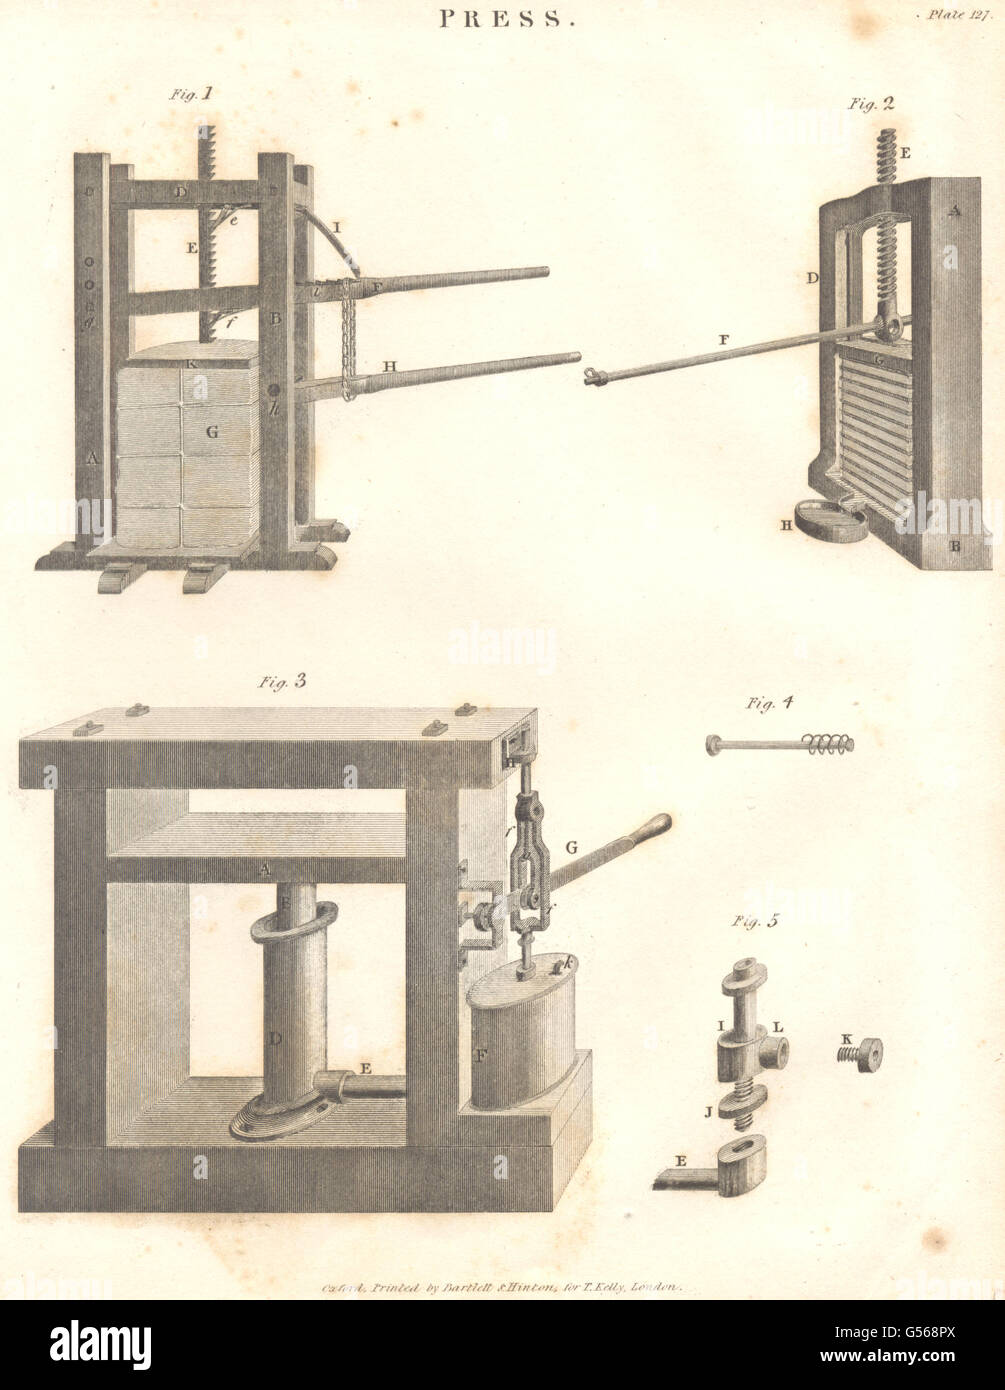 SCIENCE: Press. (Oxford Encyclopaedia), antique print 1830 - Stock Image